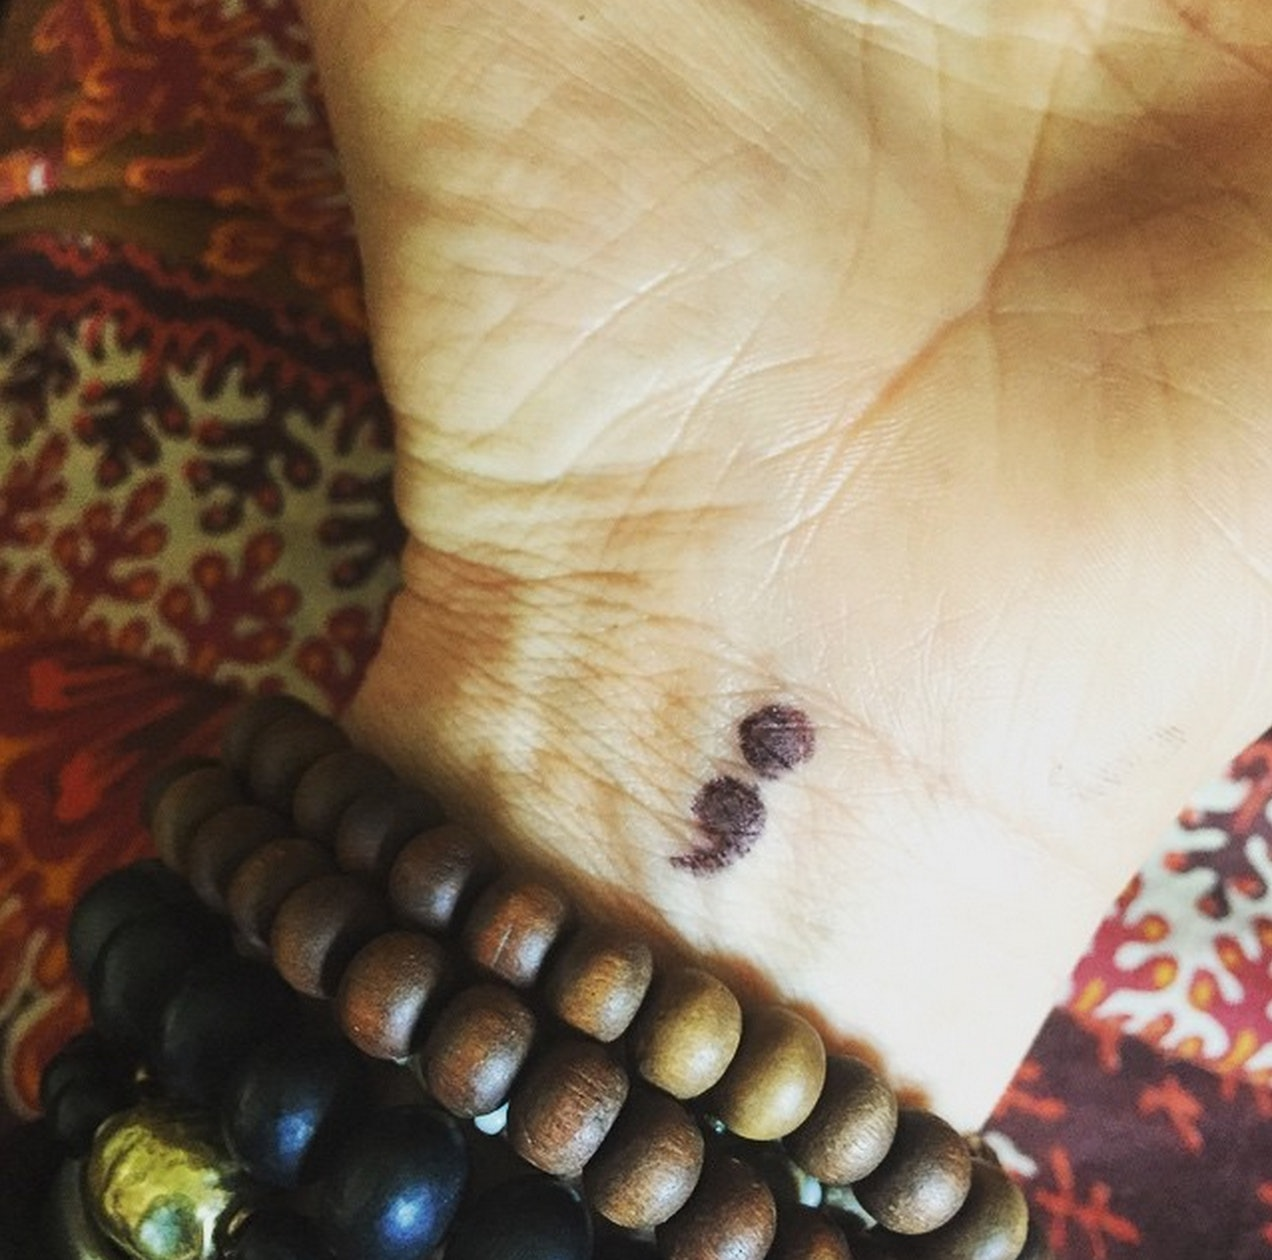 What does a semicolon tattoo mean how the semicolon project is what does a semicolon tattoo mean how the semicolon project is using the symbol to support people with mental illness photos buycottarizona Gallery